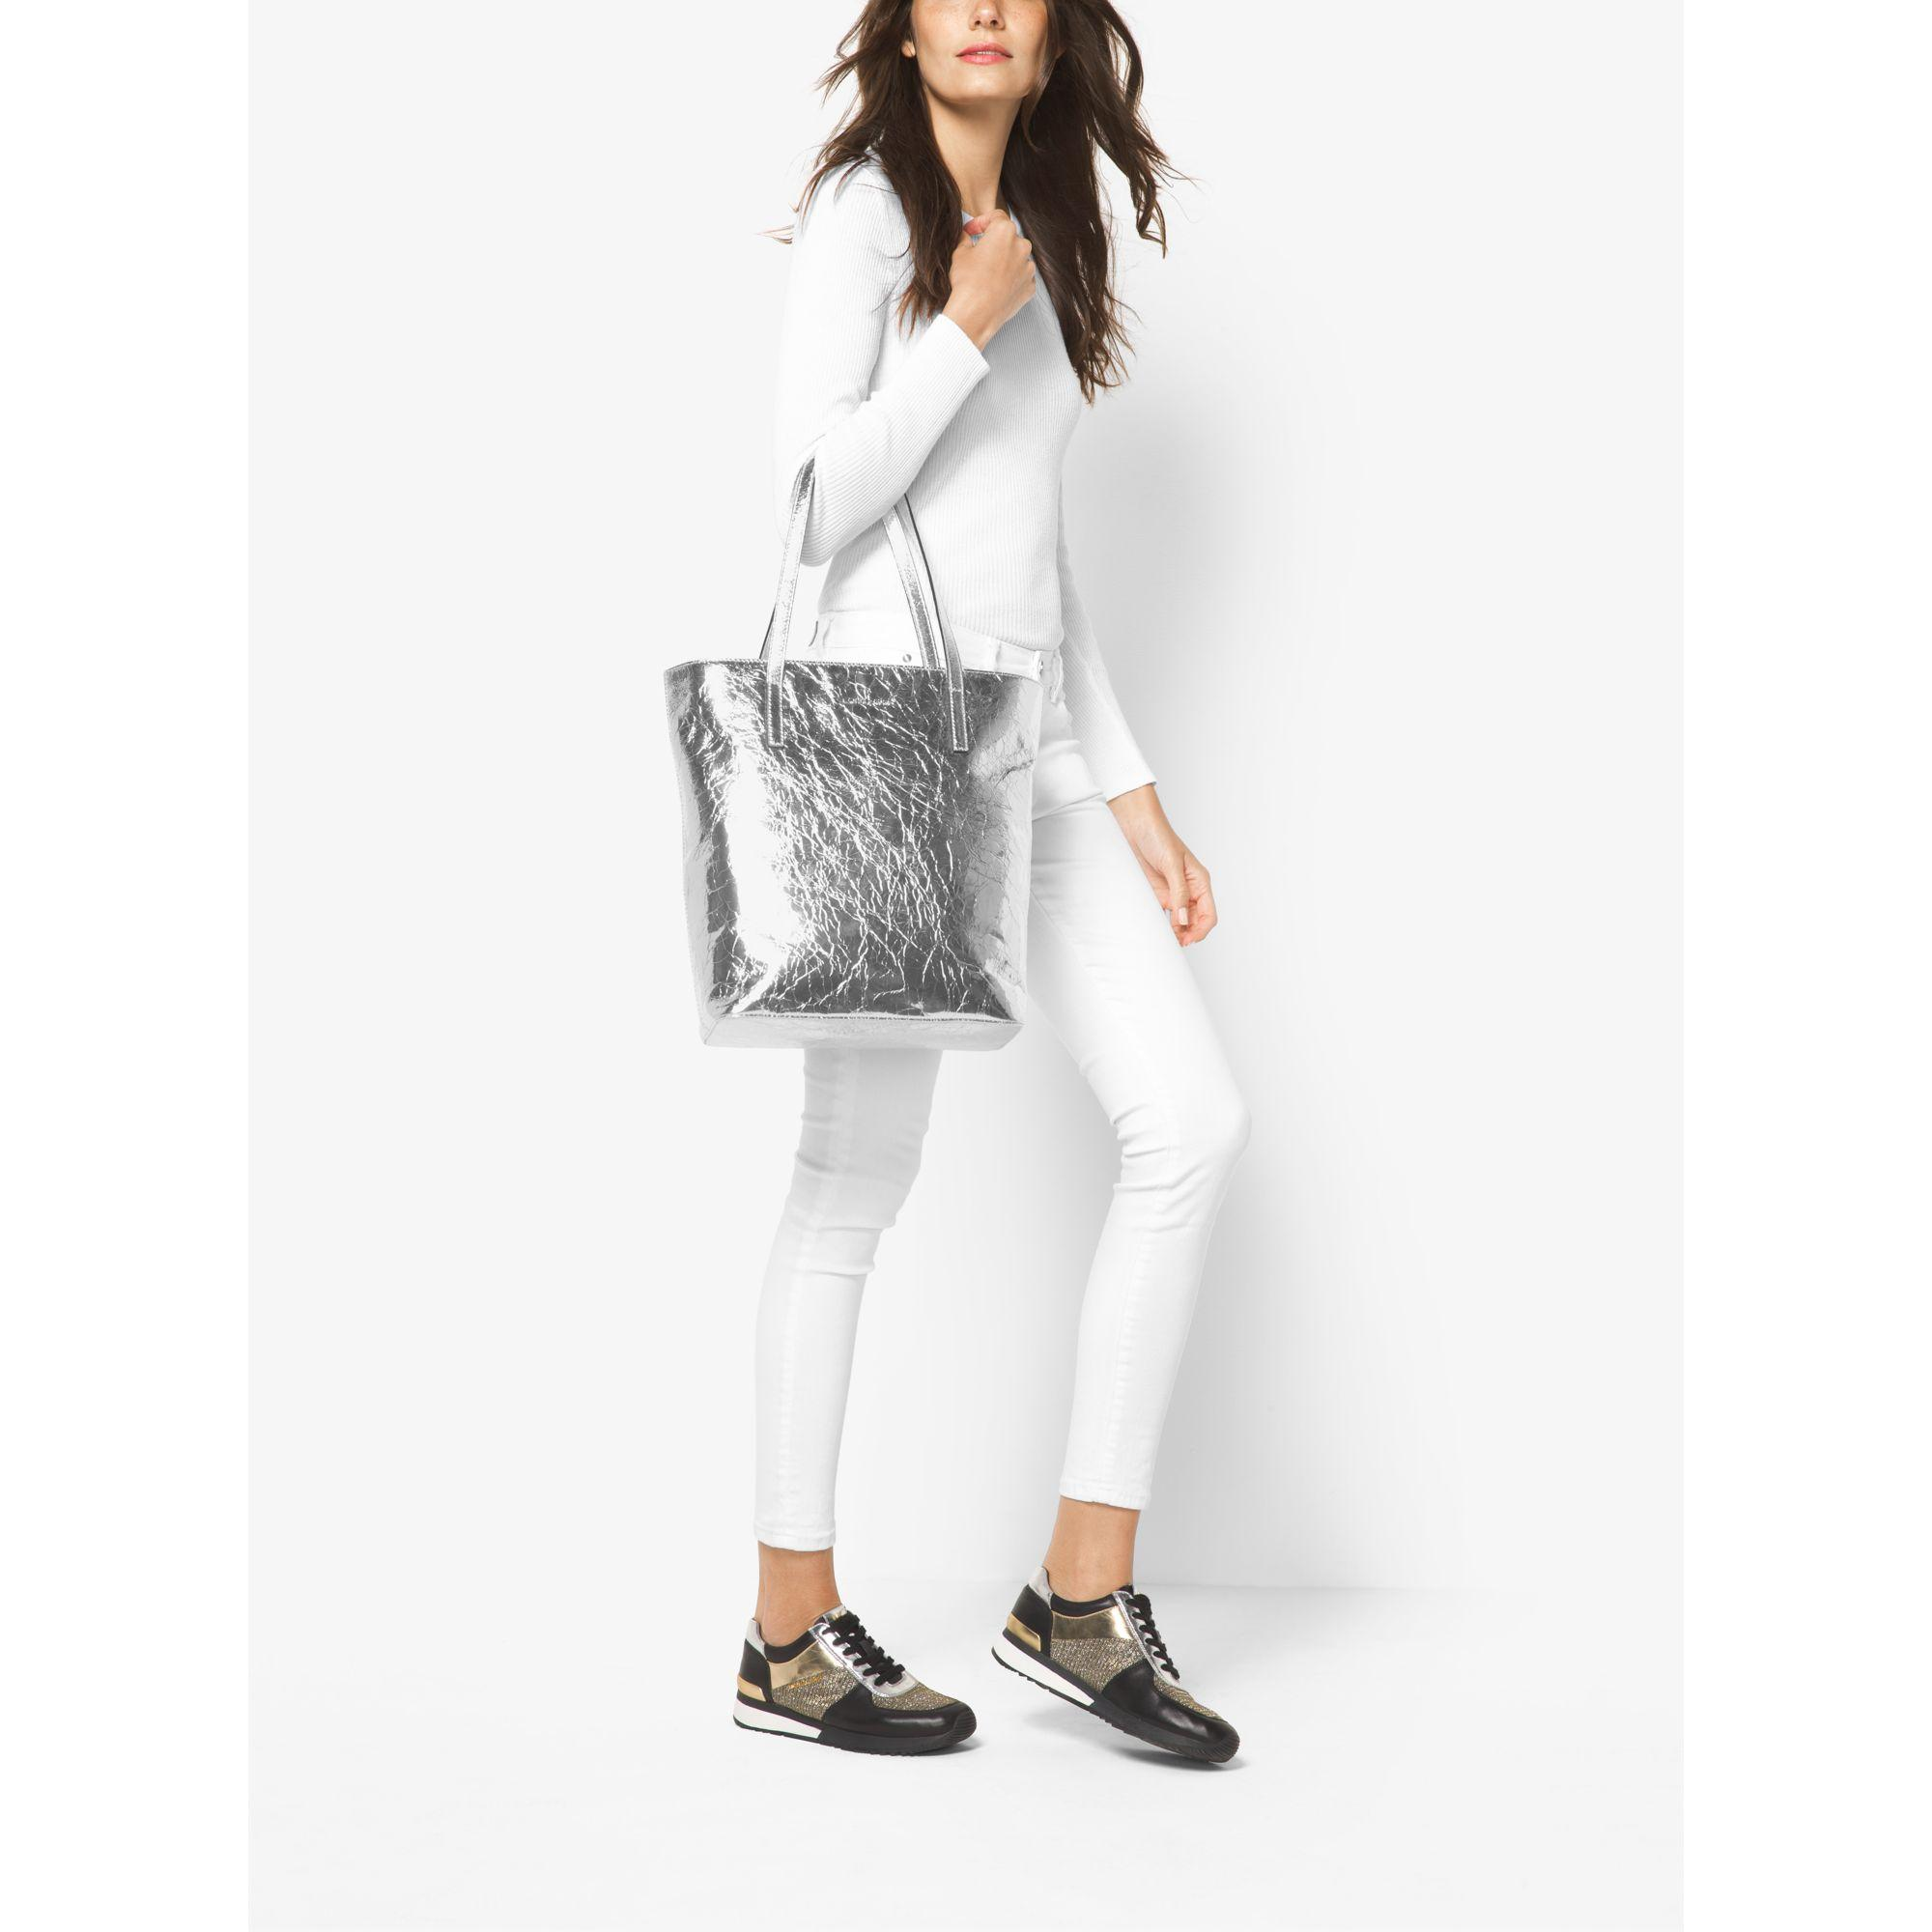 10485e153972 Michael Kors Emry Large Crinkled-leather Tote Bag in Metallic - Lyst